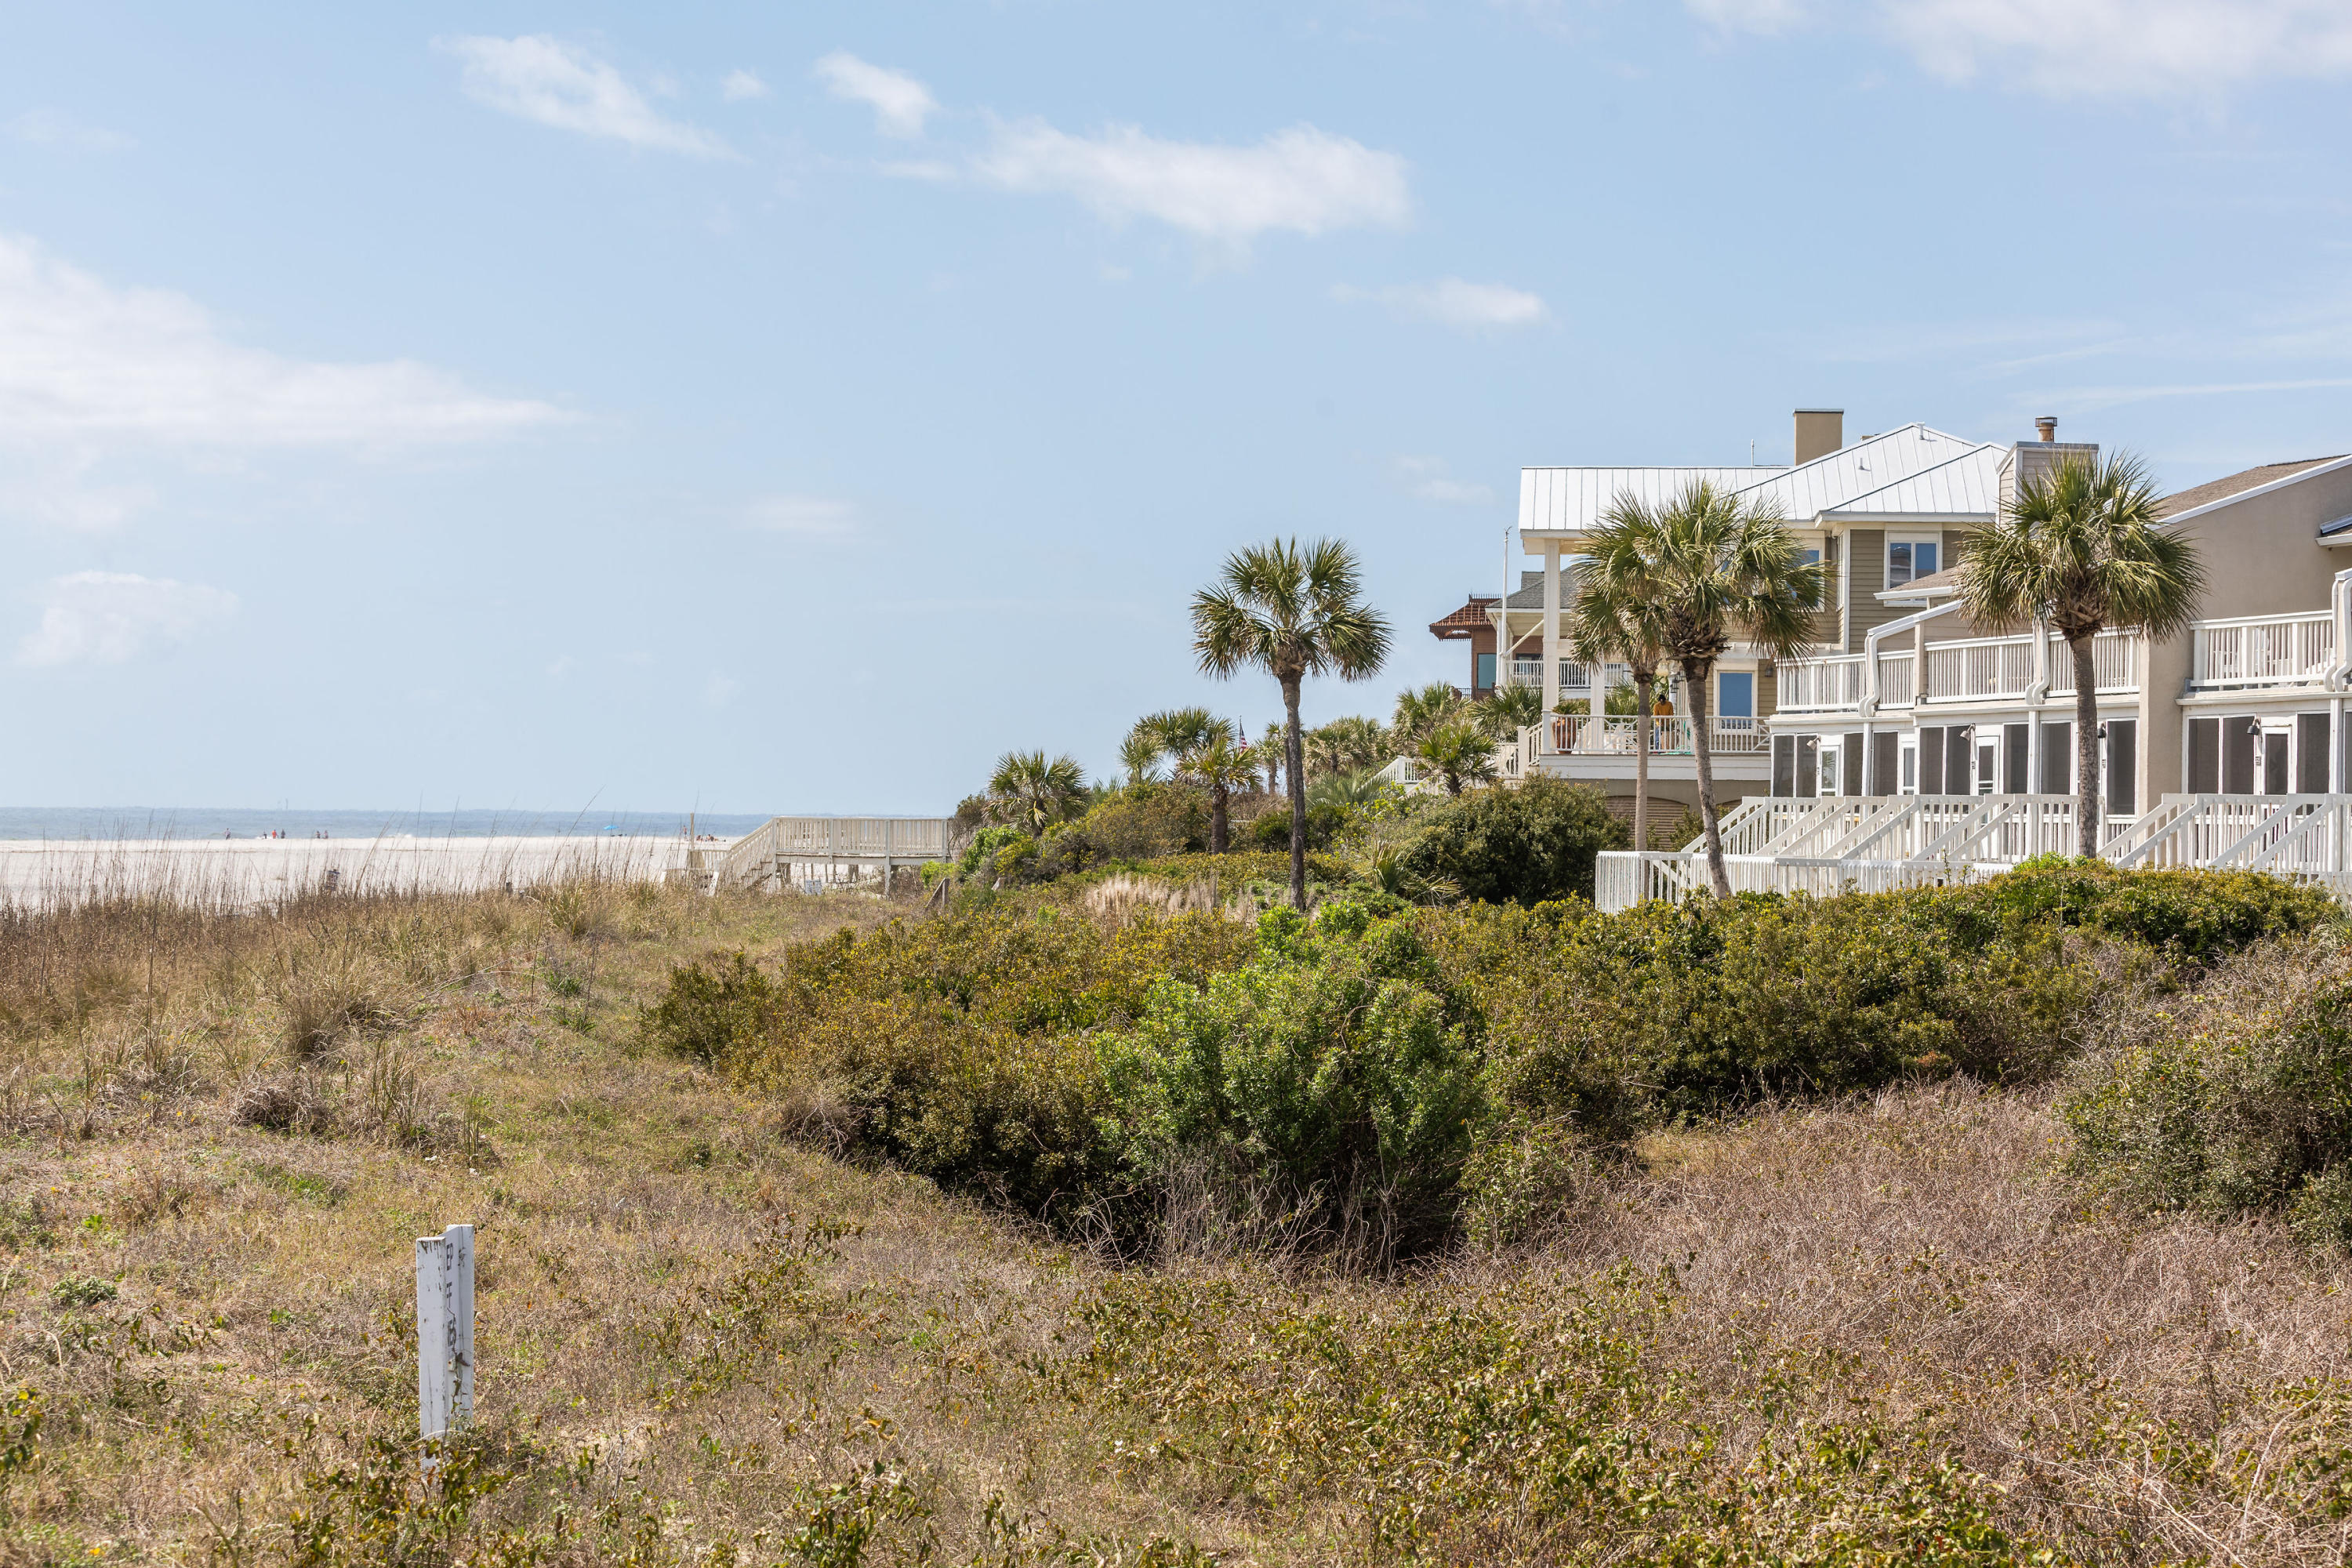 Beach Club Villas Homes For Sale - 33 Beach Club Villas, Isle of Palms, SC - 3